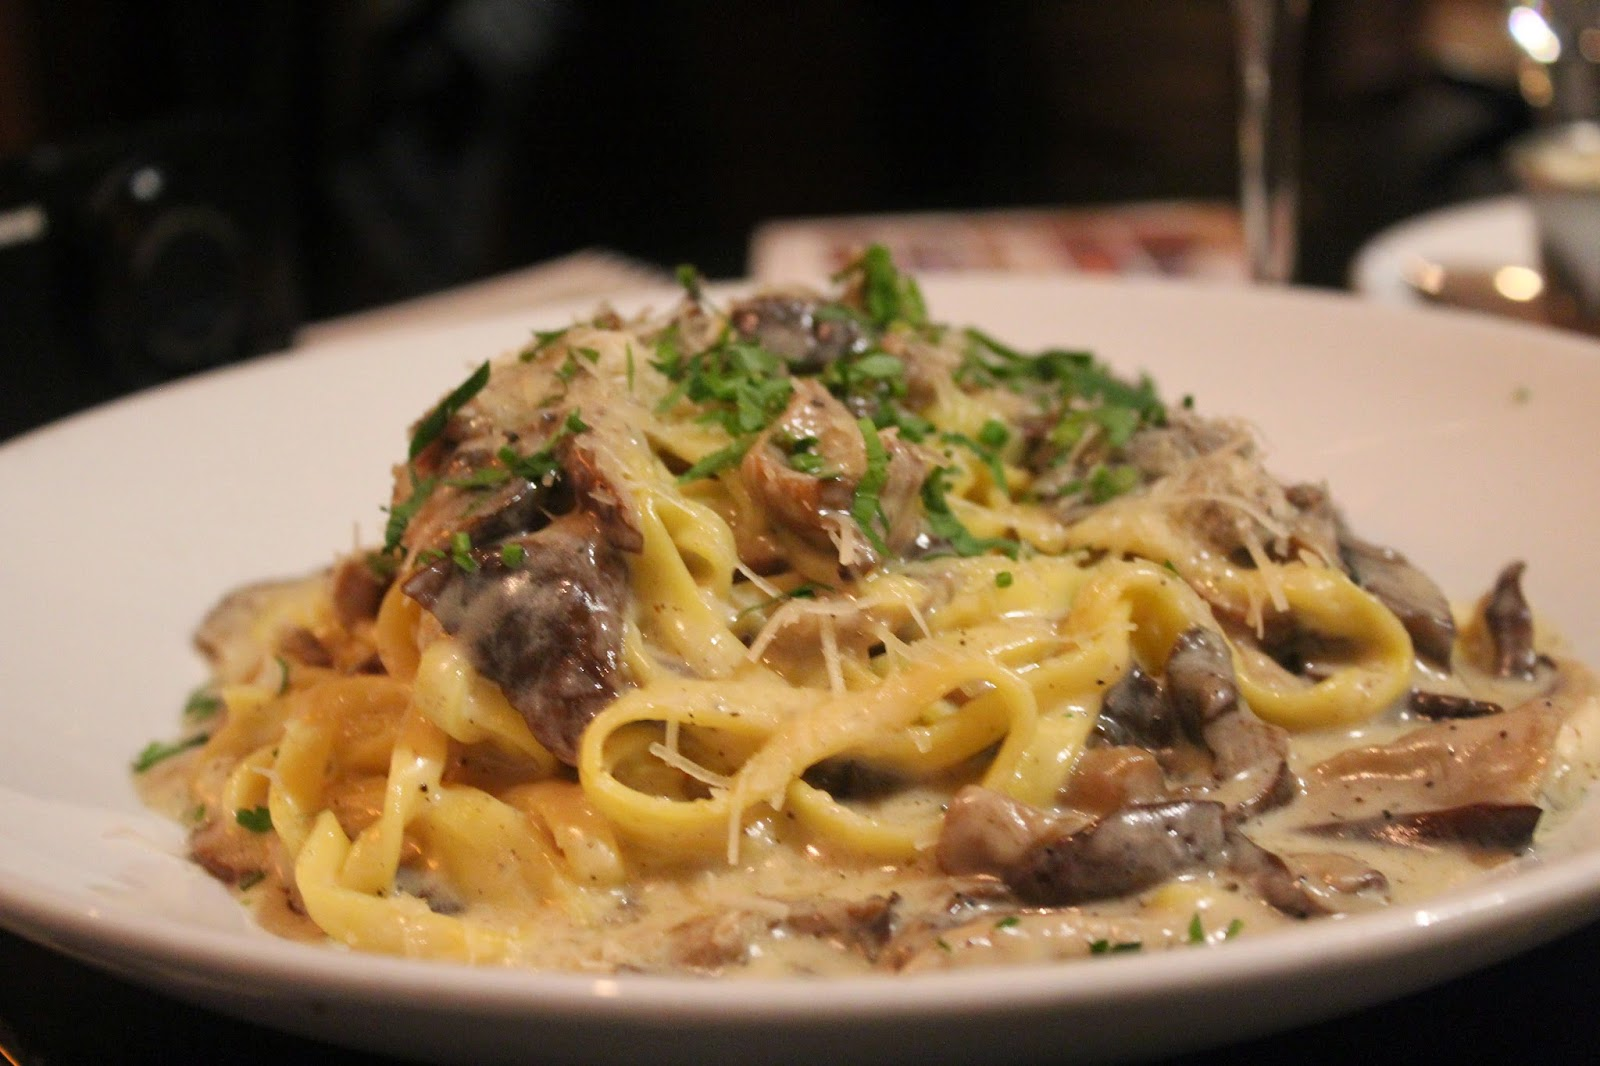 Linguine with black truffle cream at Orta, Pembroke, Mass.